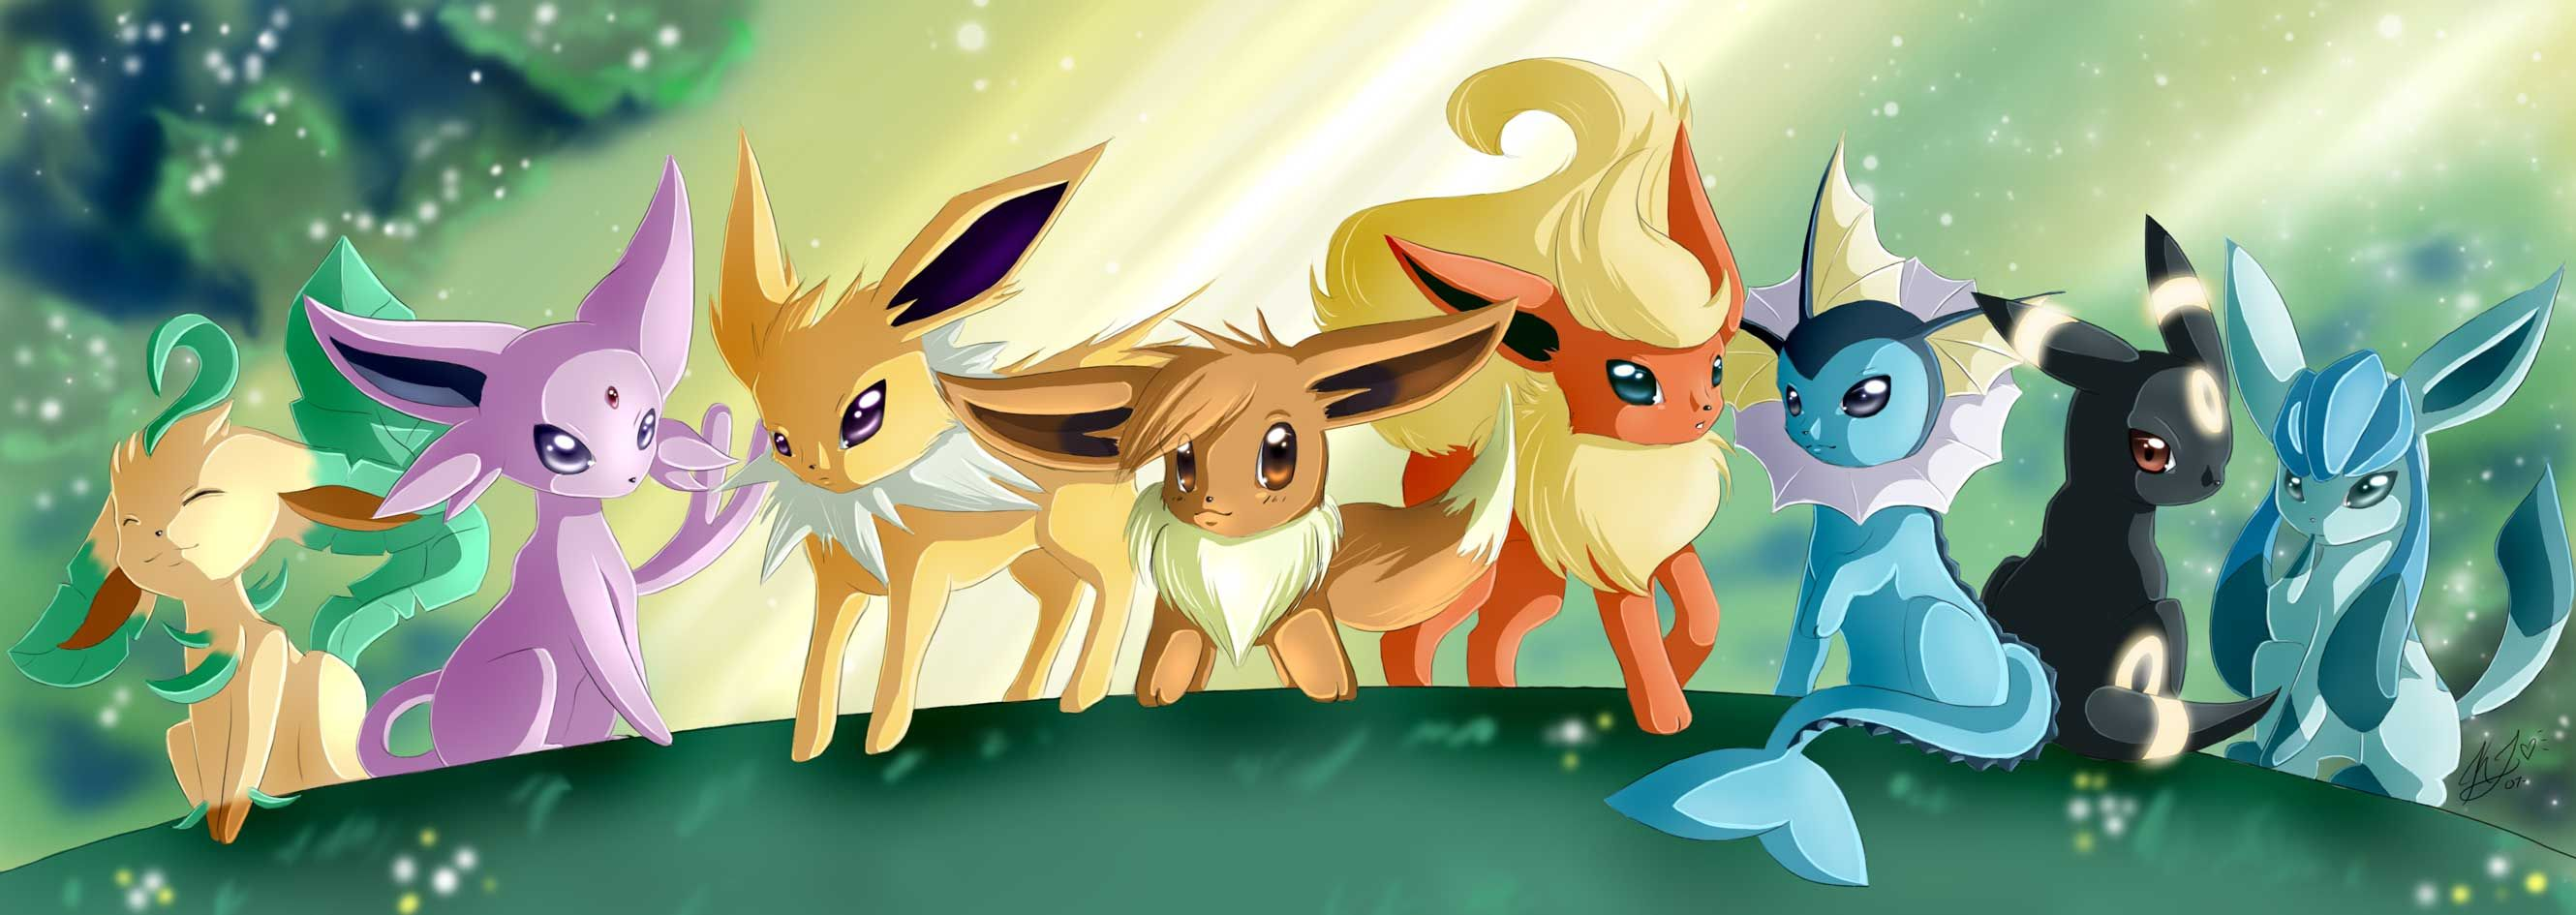 Pokemon Eevee Wallpapers Pokemon Eevee Eevee Wallpaper Pokemon